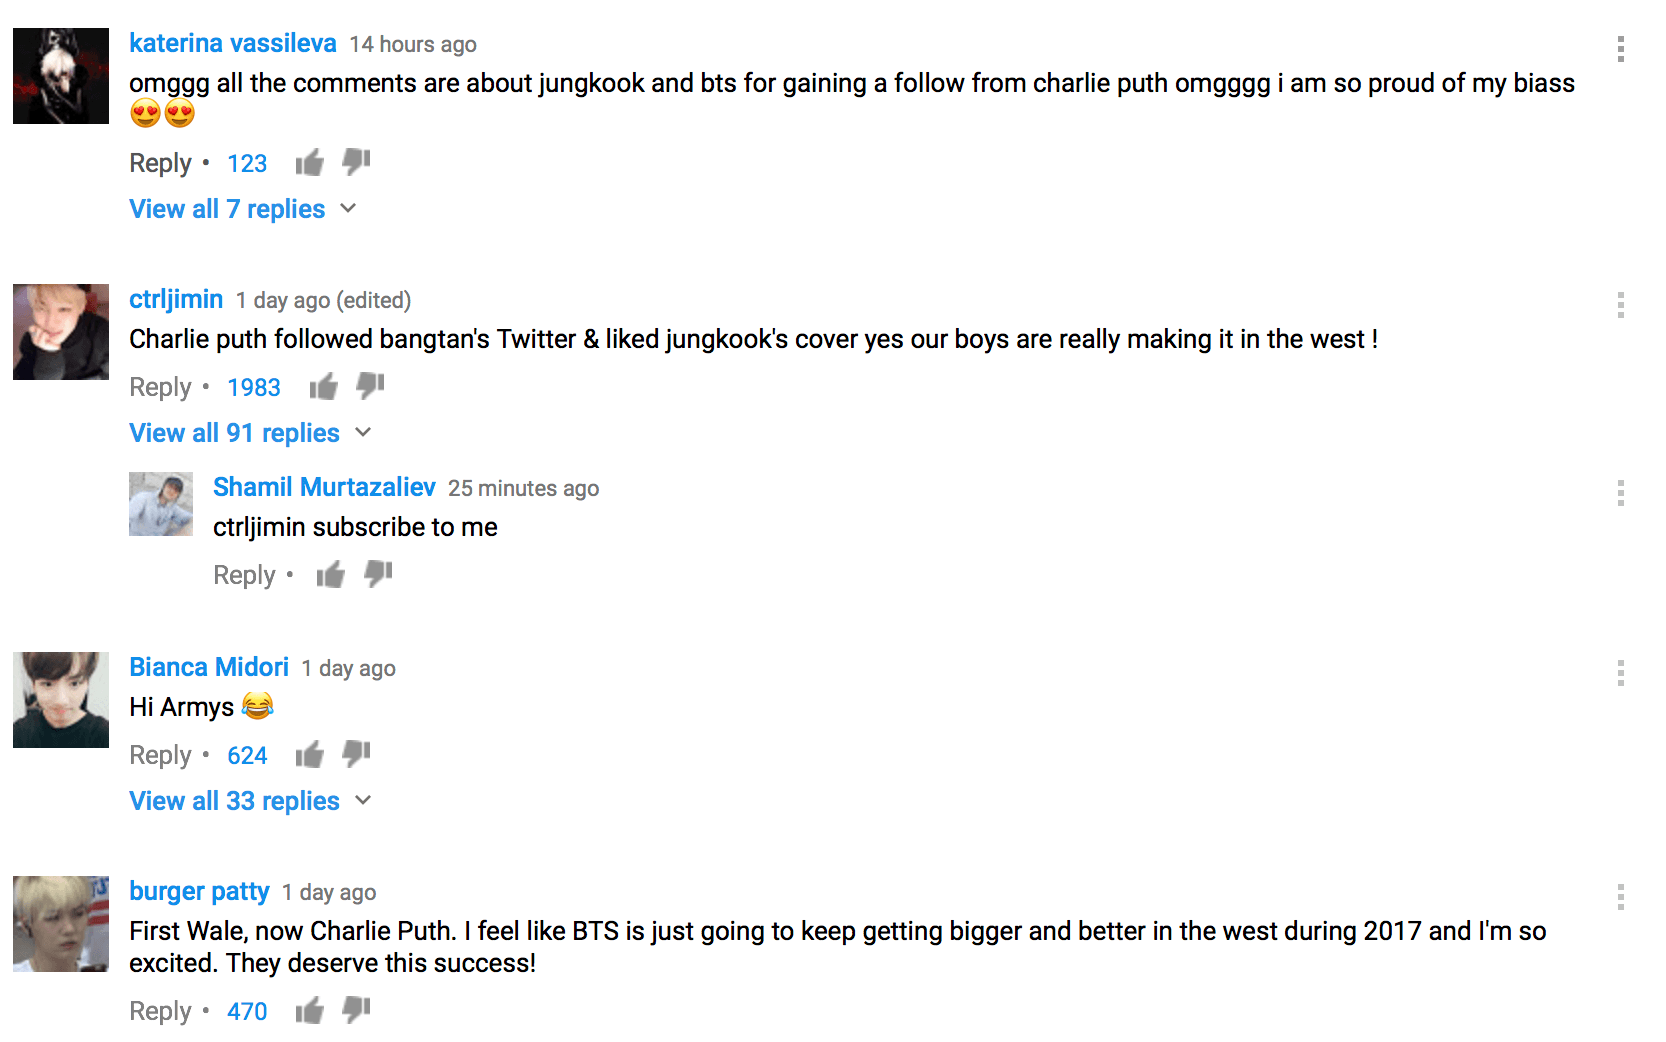 Fans are leaving hundreds of comments on the official YouTube video in support of Jungkook